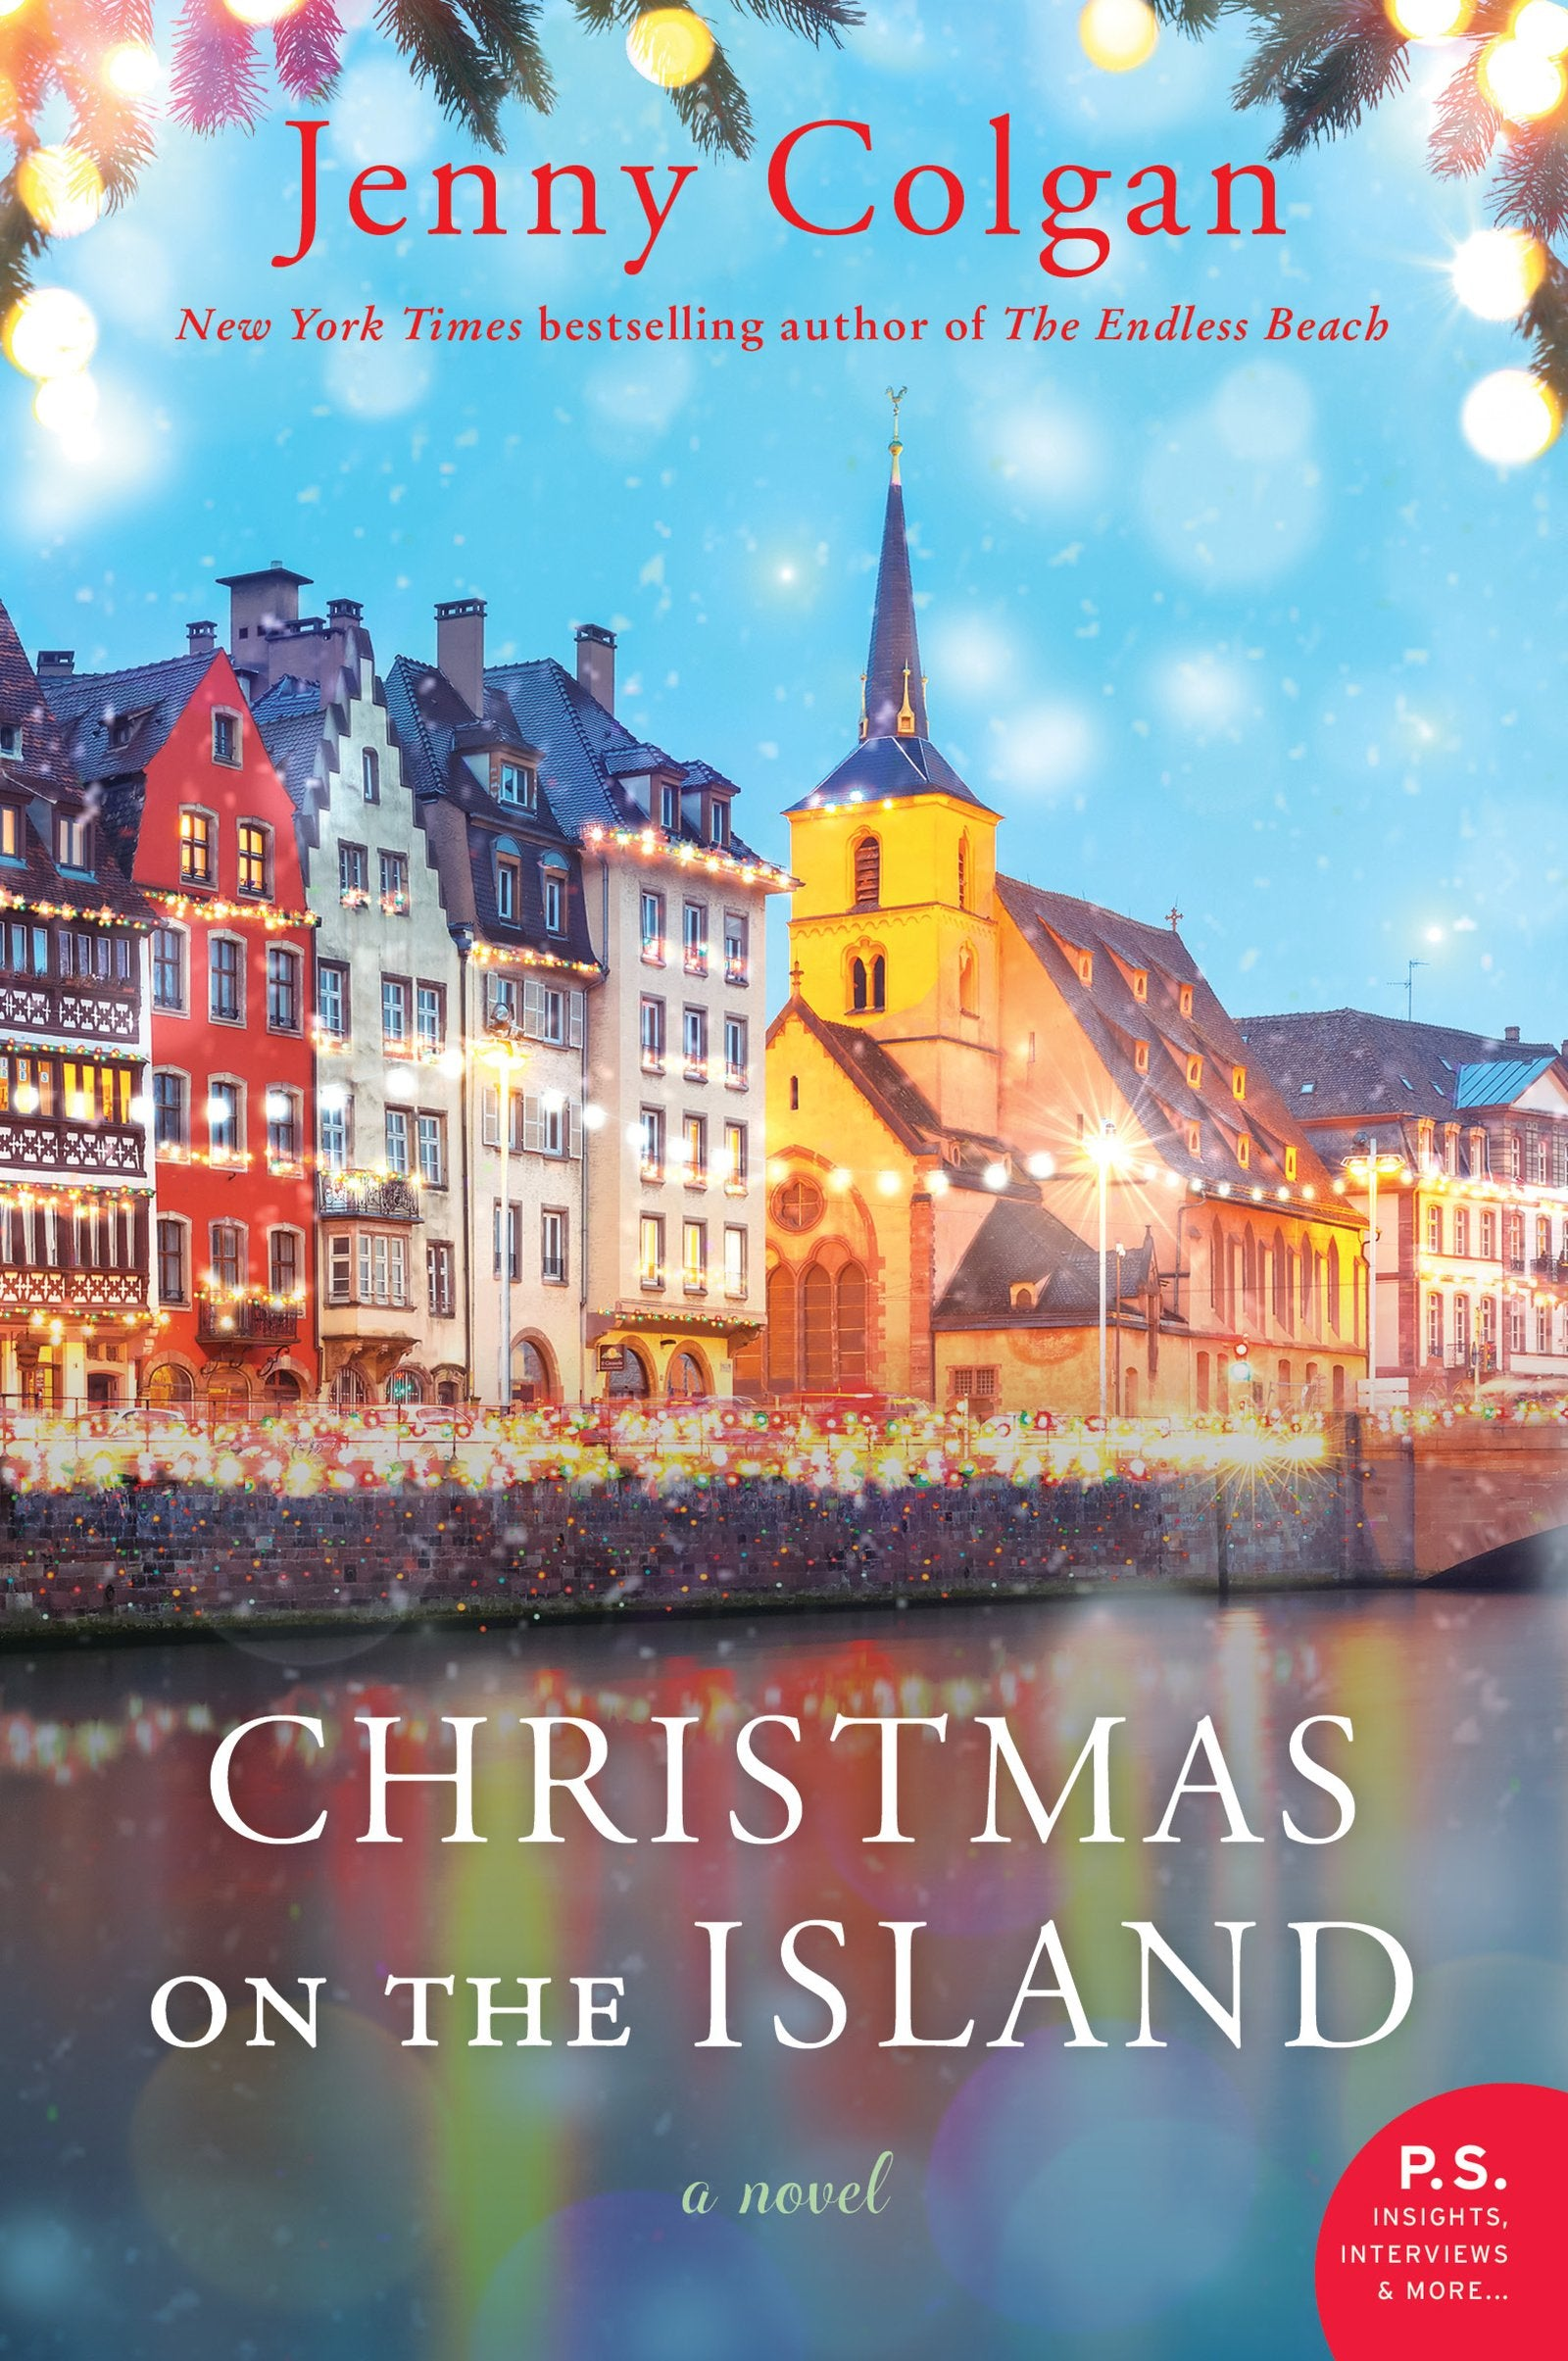 Christmas on the Island by Jenny Colgan - Lavender Hill Designs Book Club